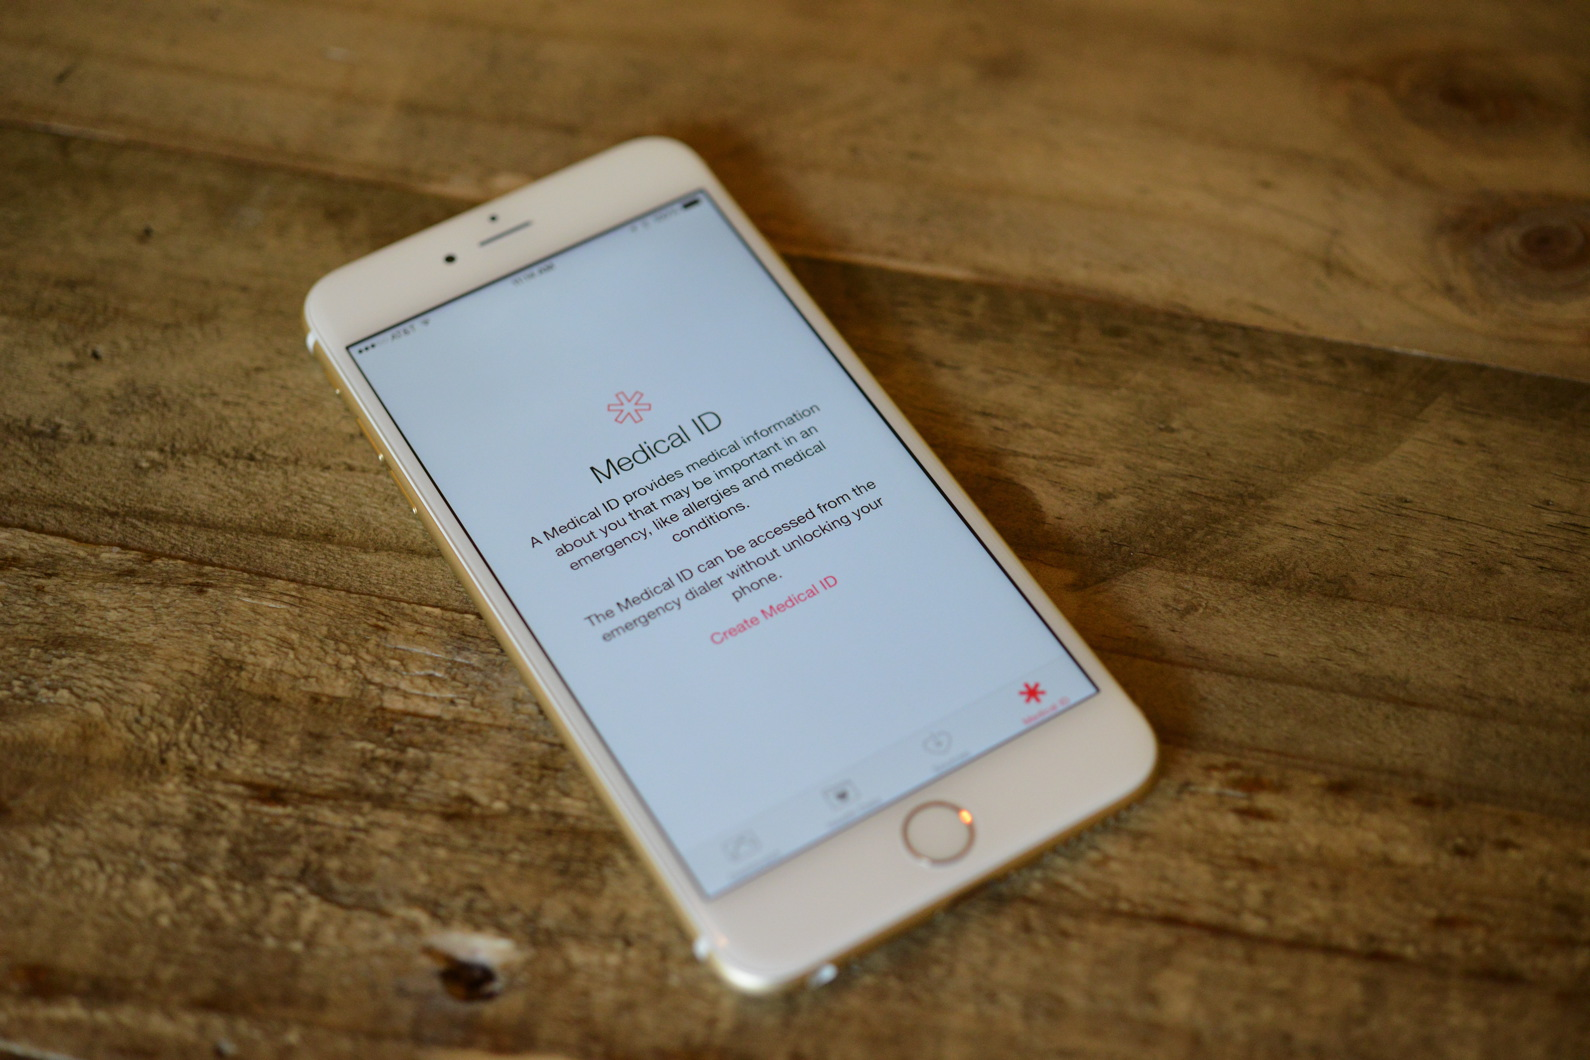 big_iphone6plus-hands-on_2740.jpg